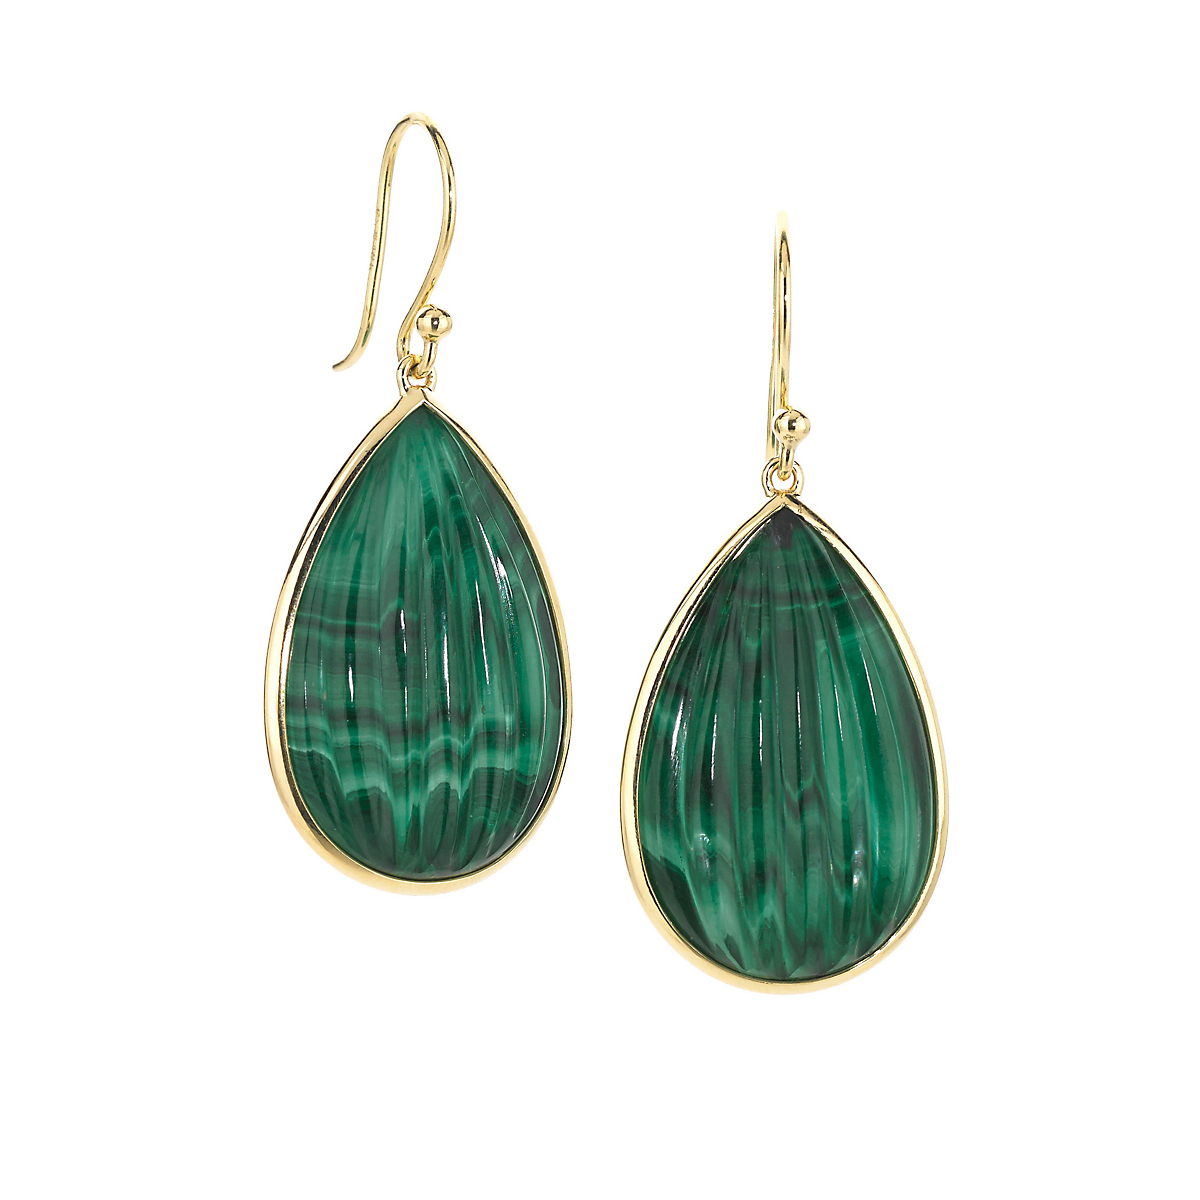 Elizabeth Showers Malachite & Quartz Pearburst Earrings